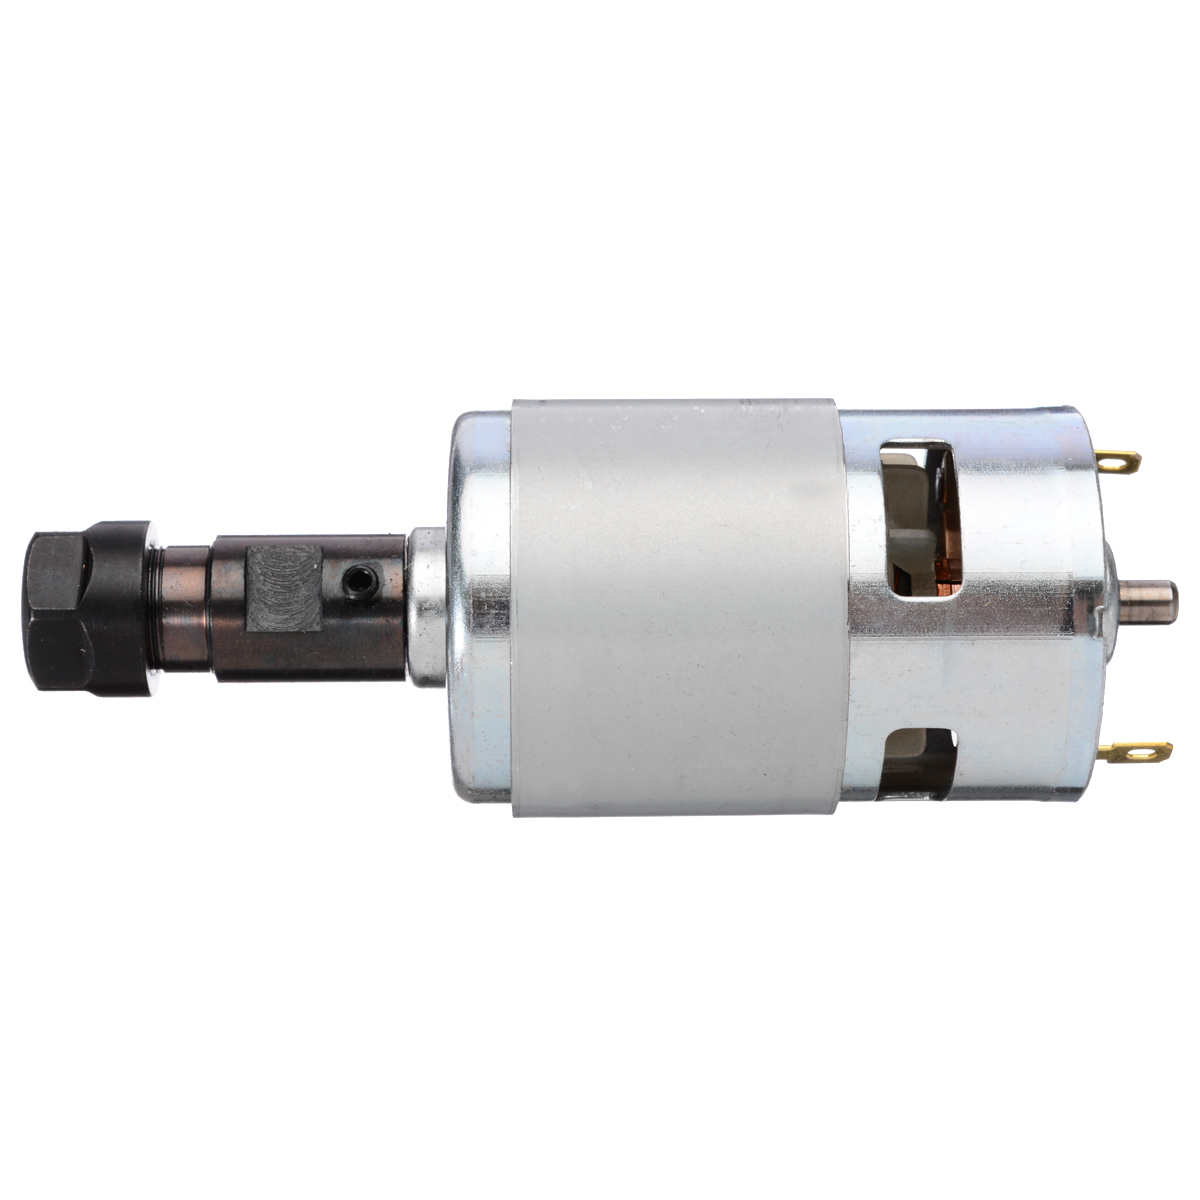 New Spindle 775 DC Motor 12-36V with ER11 Replacement Part High Quality For CNC Router Machine Router MachineNew Spindle 775 DC Motor 12-36V with ER11 Replacement Part High Quality For CNC Router Machine Router Machine